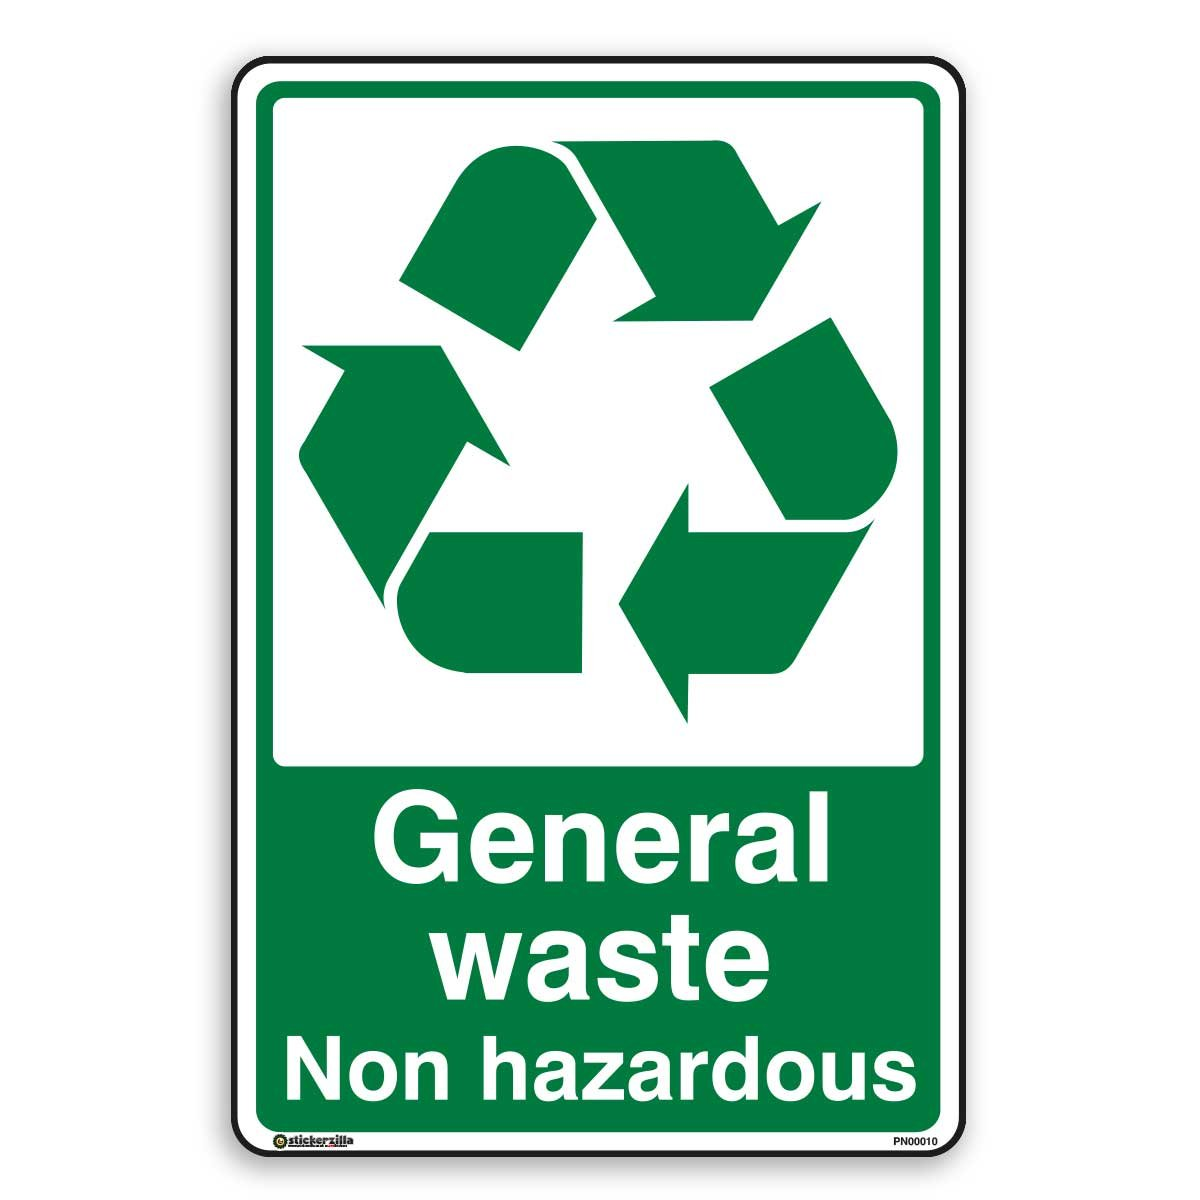 Infectious waste symbol choice image symbol and sign ideas infectious waste symbol image collections symbol and sign ideas general waste recycling sign self adhesive sticker biocorpaavc